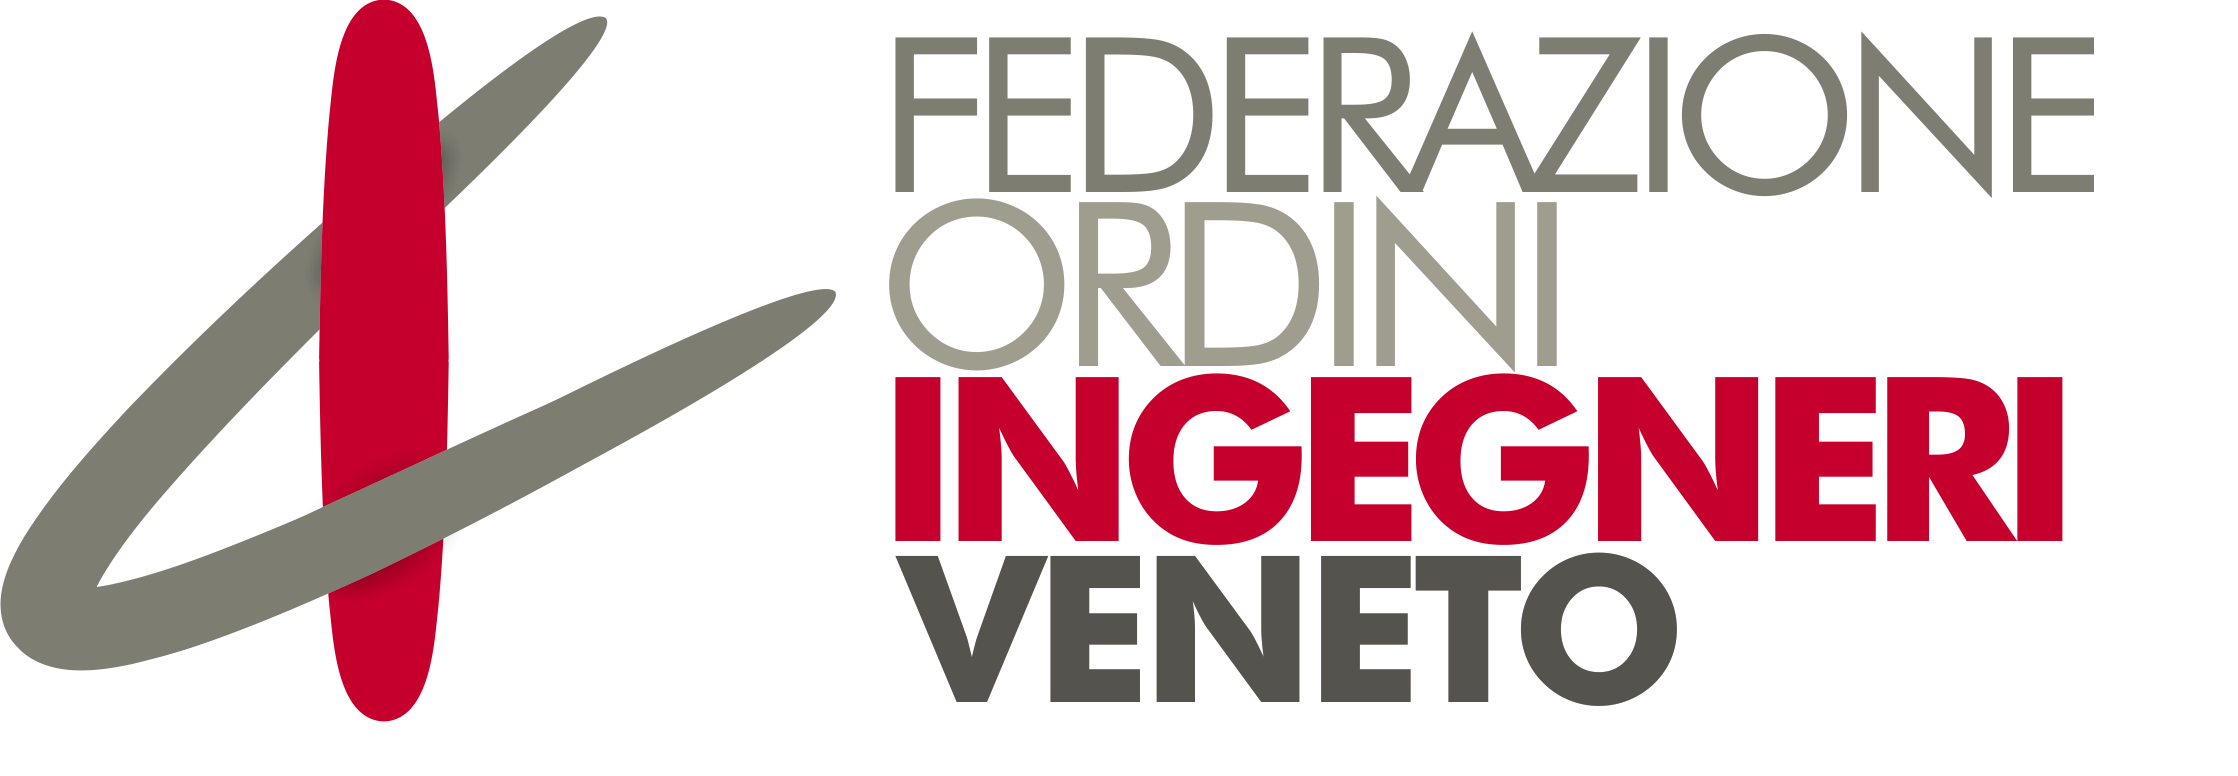 Federation of the Venetian Associations of Engineers